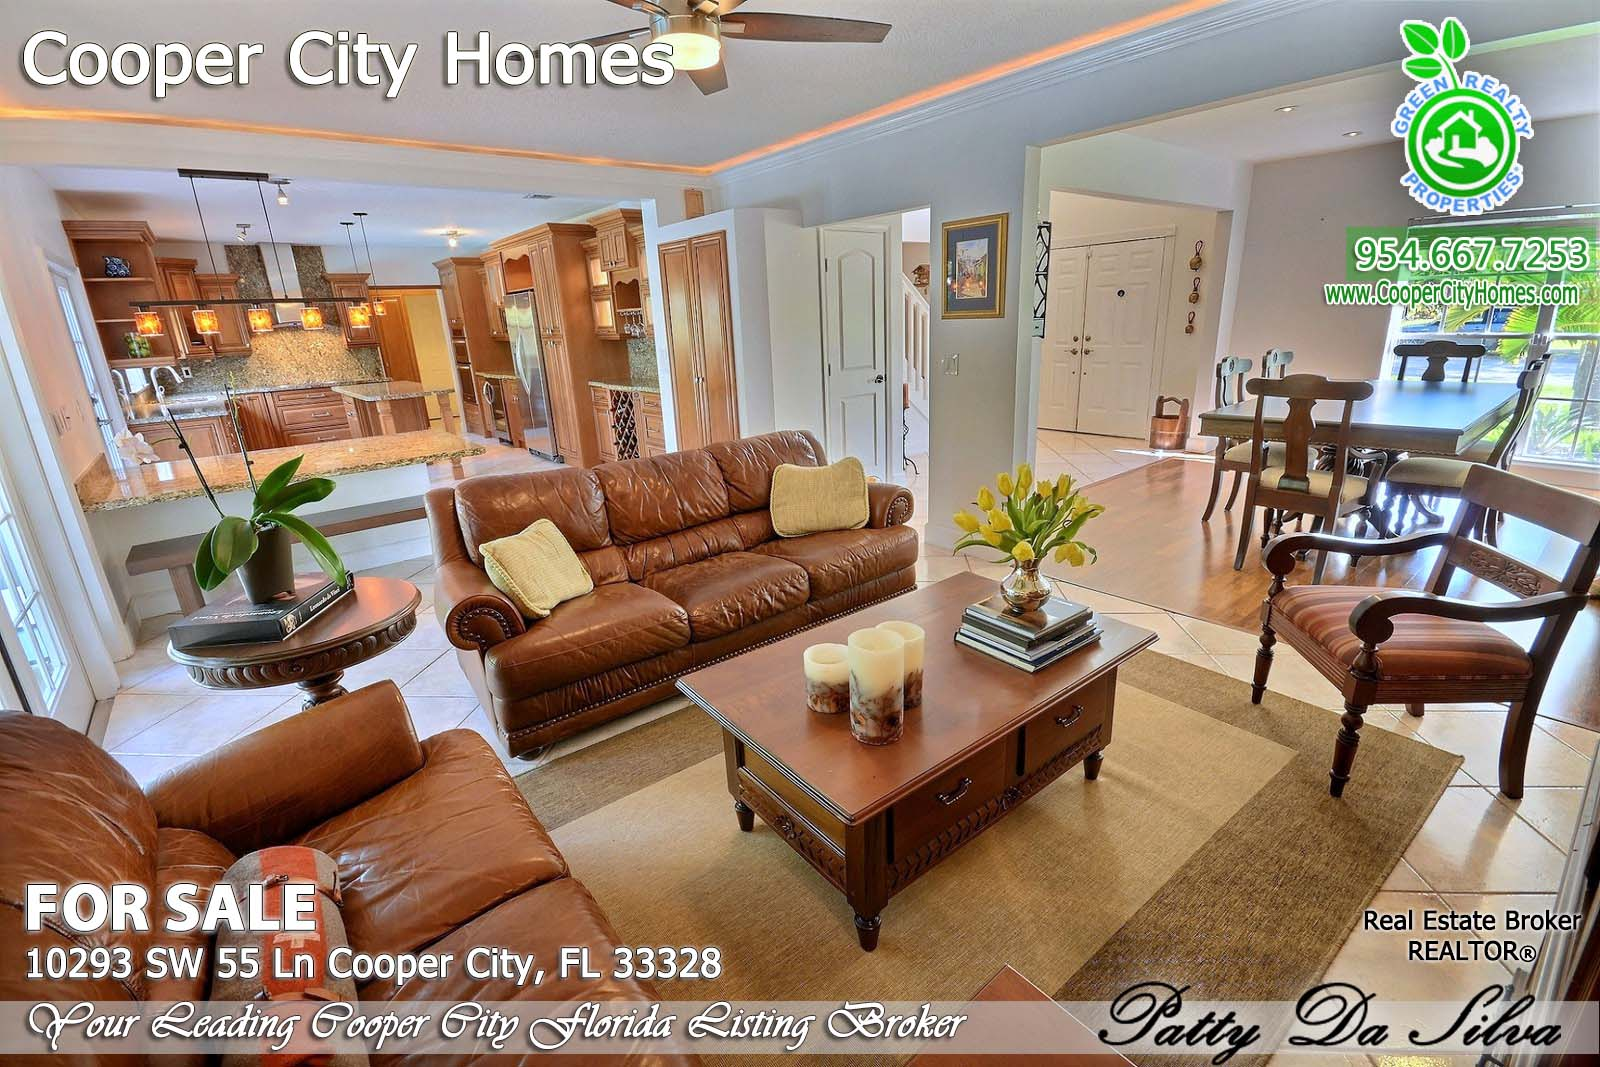 10293 - Cooper City Homes For Sale (14)